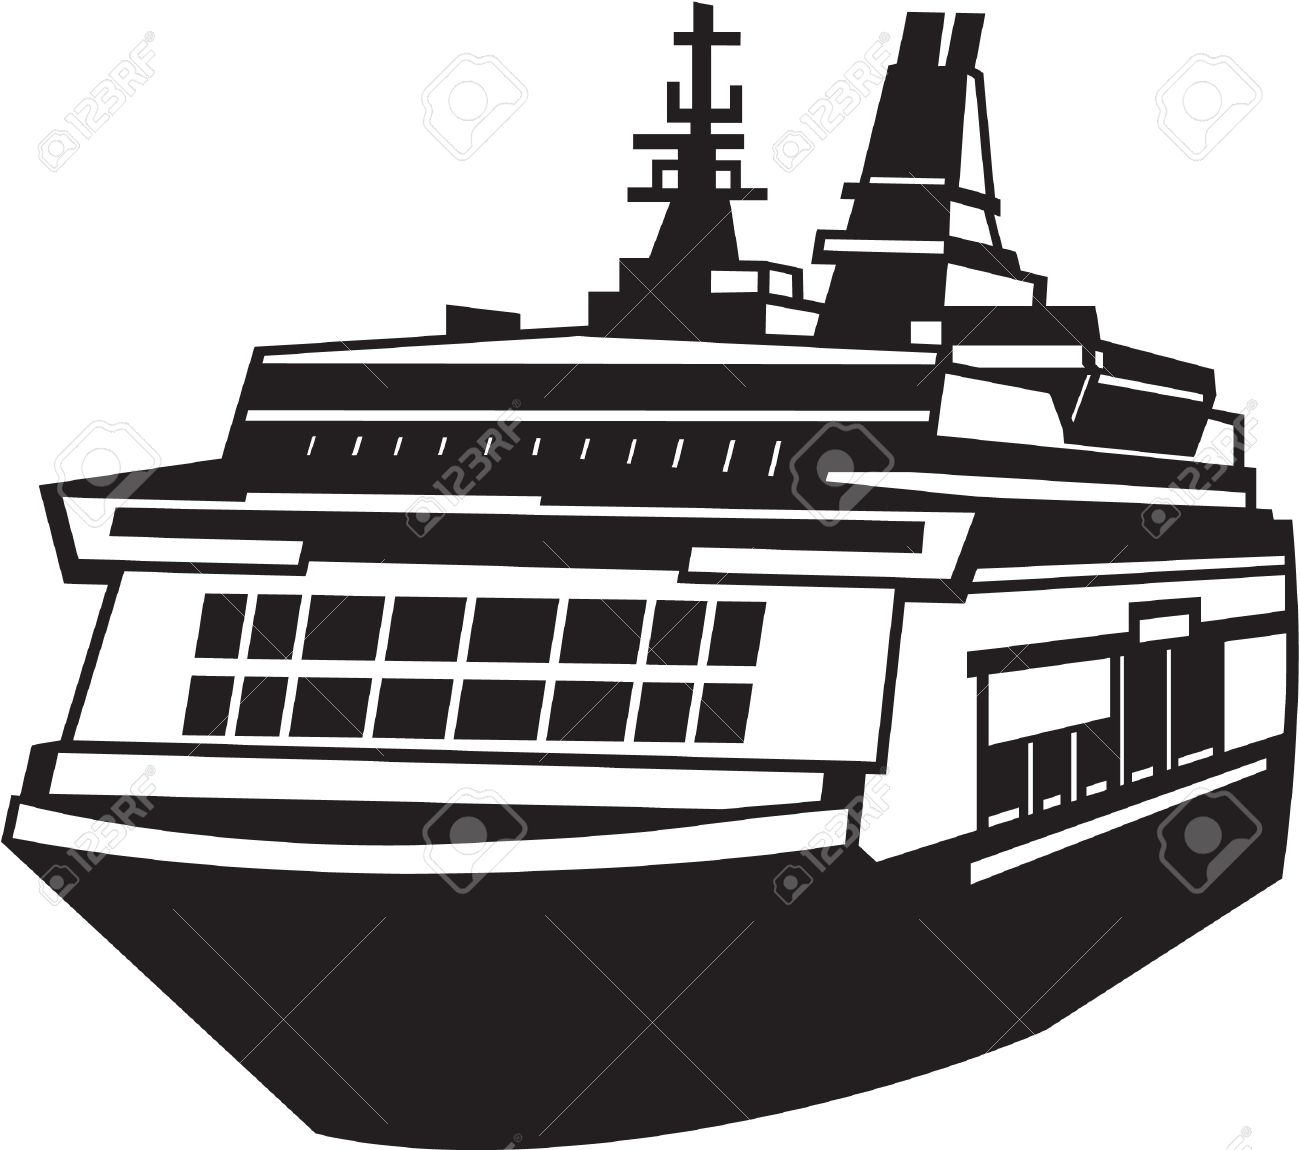 Ferry clipart black and white 5 » Clipart Station.